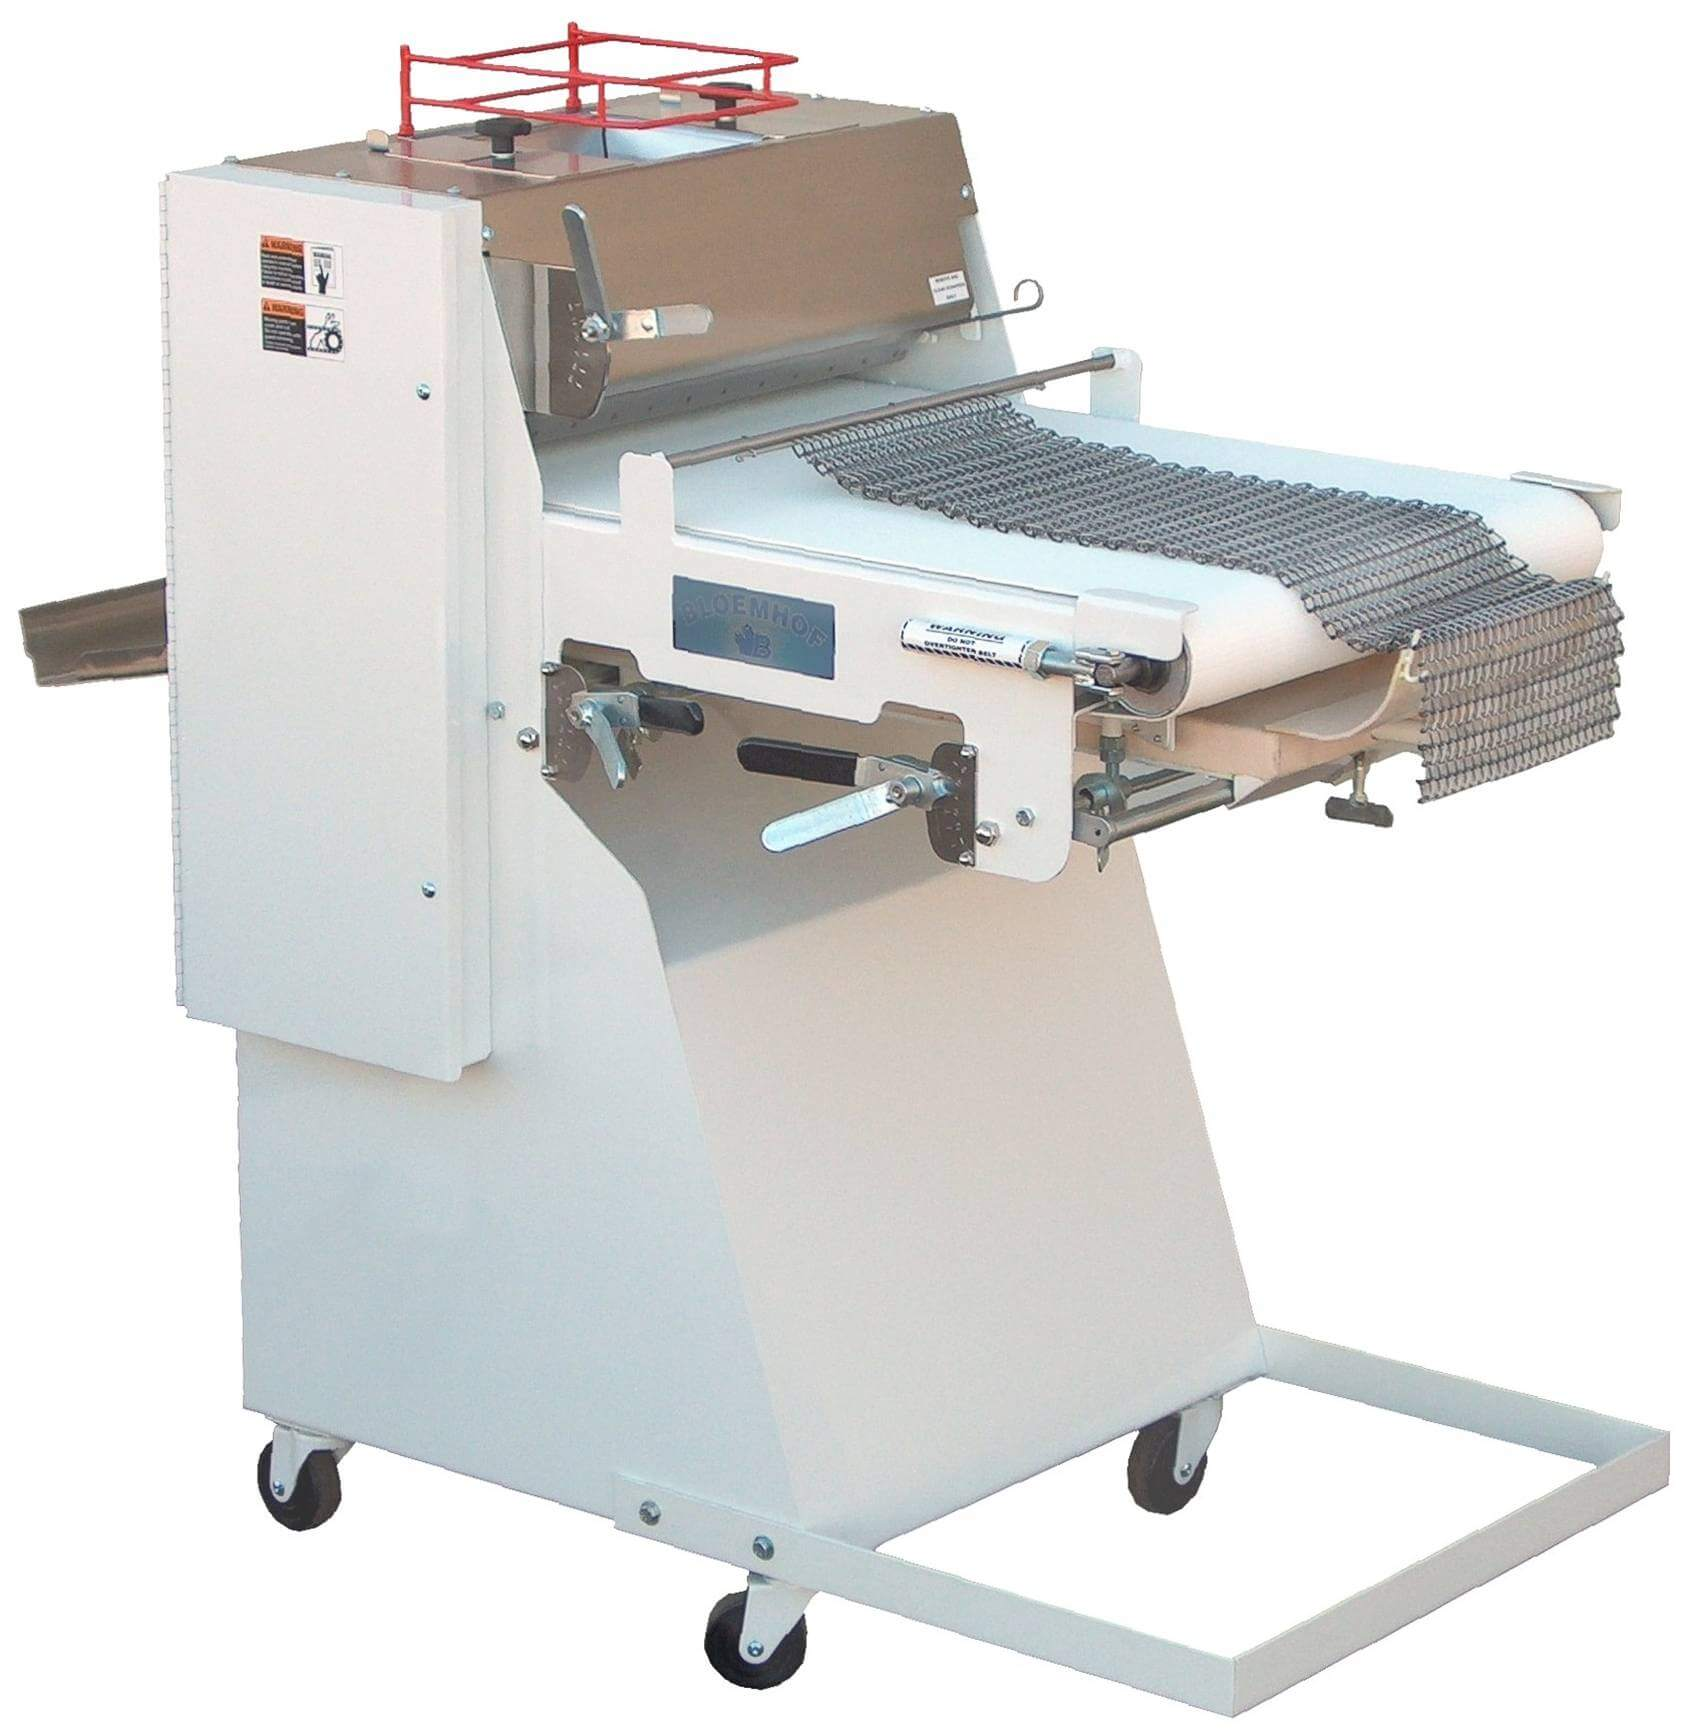 Food Services & Commercial Baking Equipment 6